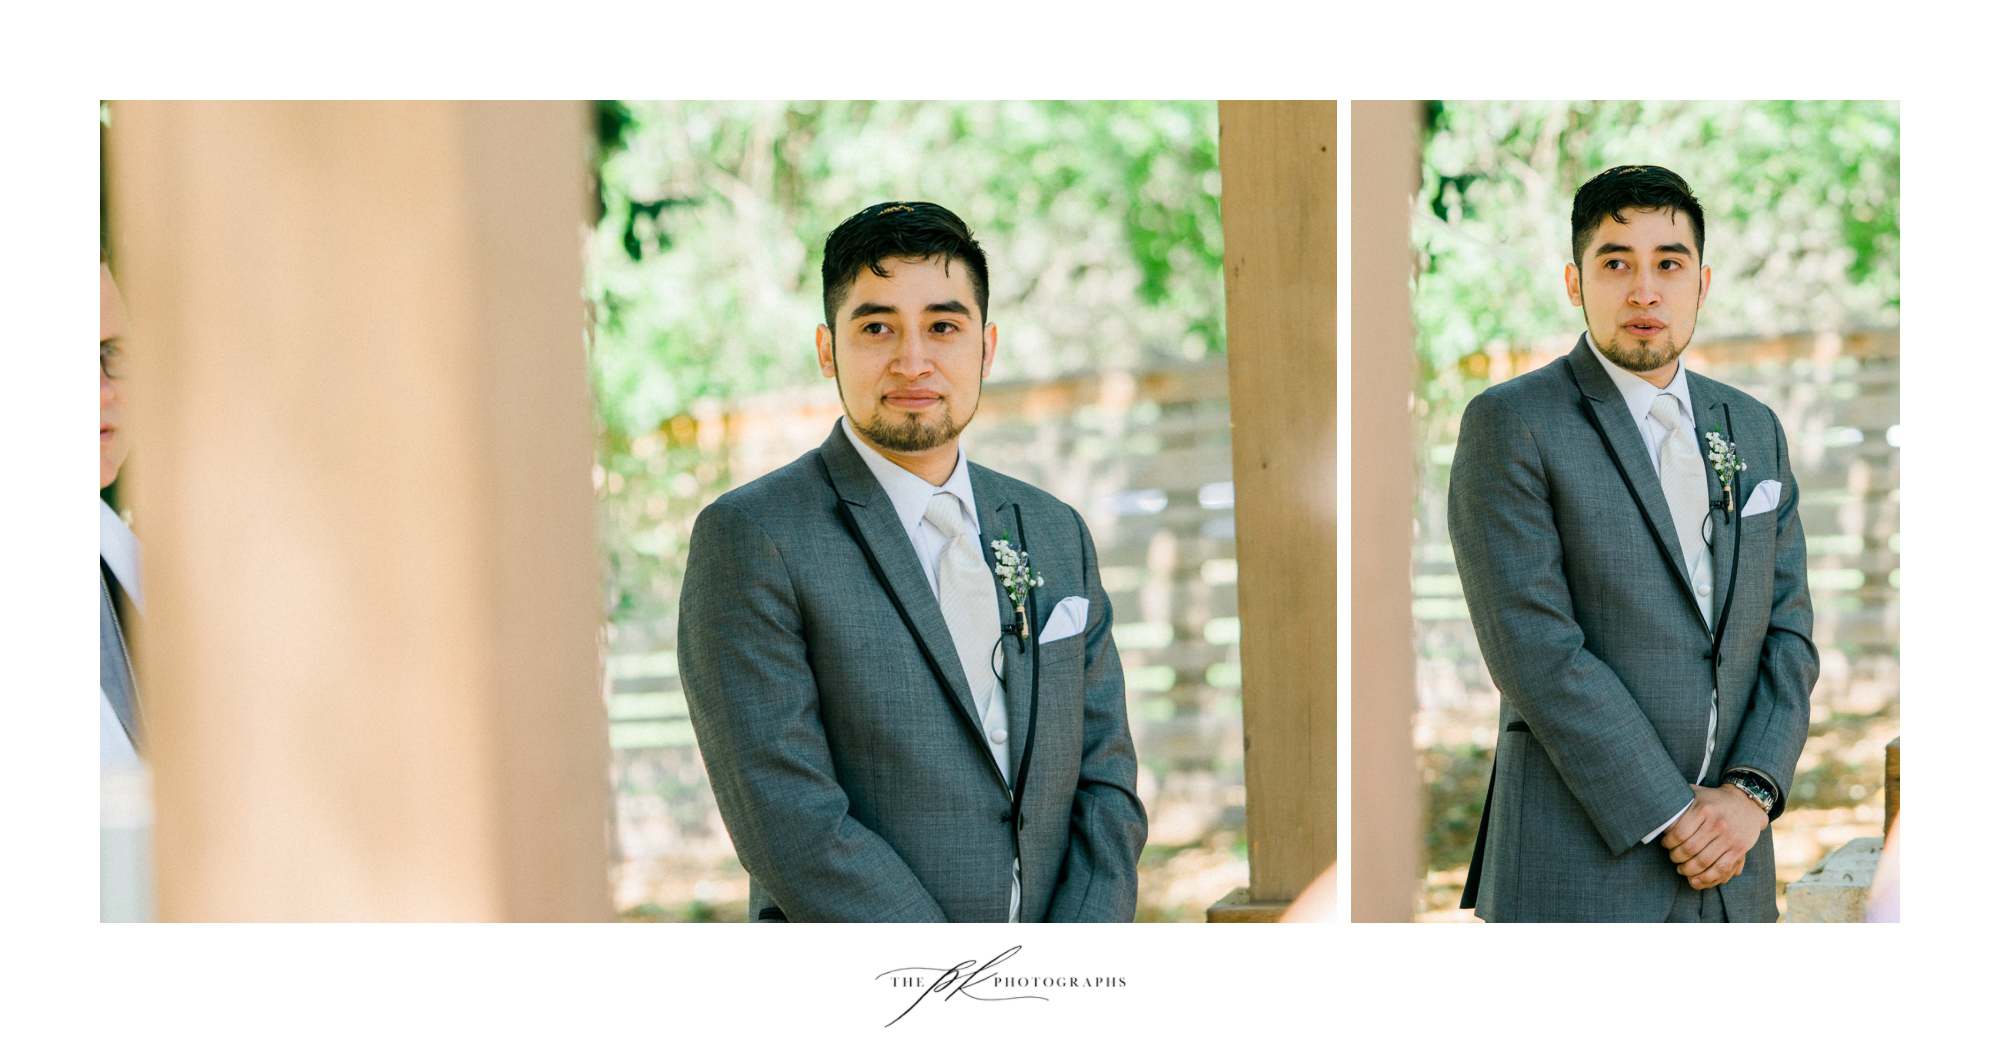 The groom waiting for his bride at their wedding ceremony at Magnolia Halle in San Antonio, Texas - Photographed by The PK Photographs